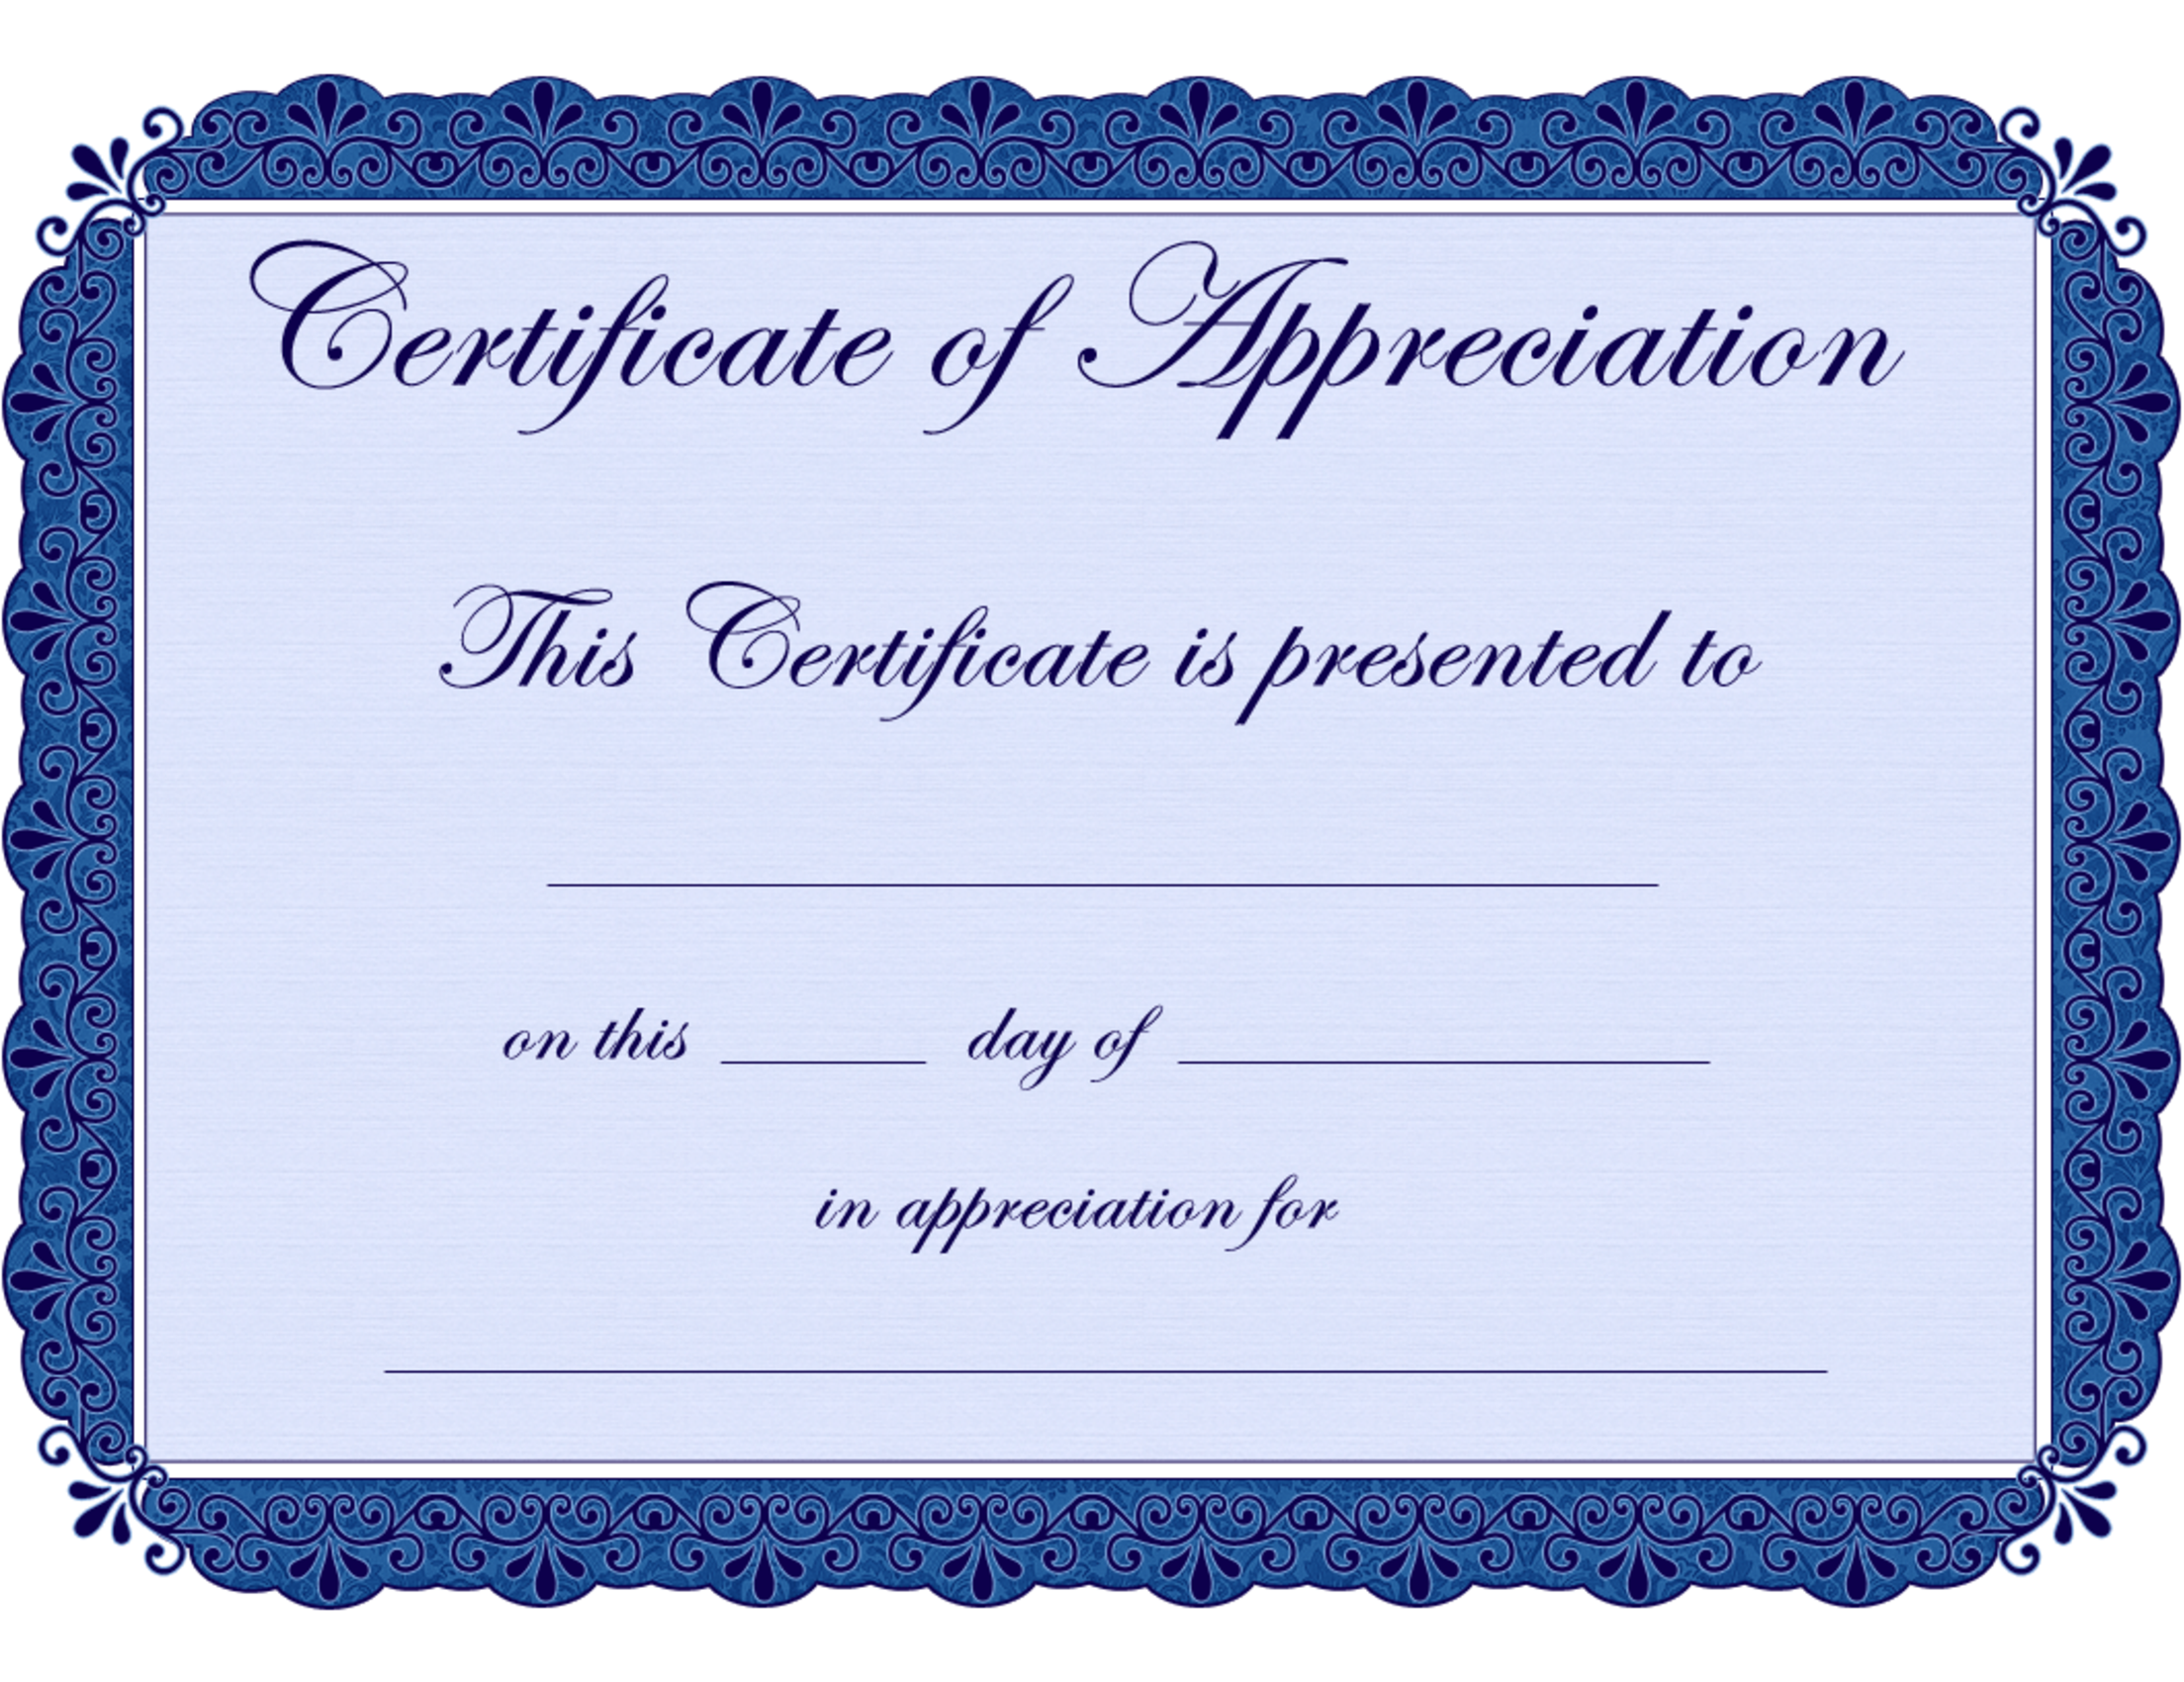 Free printable certificates certificate of appreciation free printable certificates certificate of appreciation certificate pronofoot35fo Choice Image